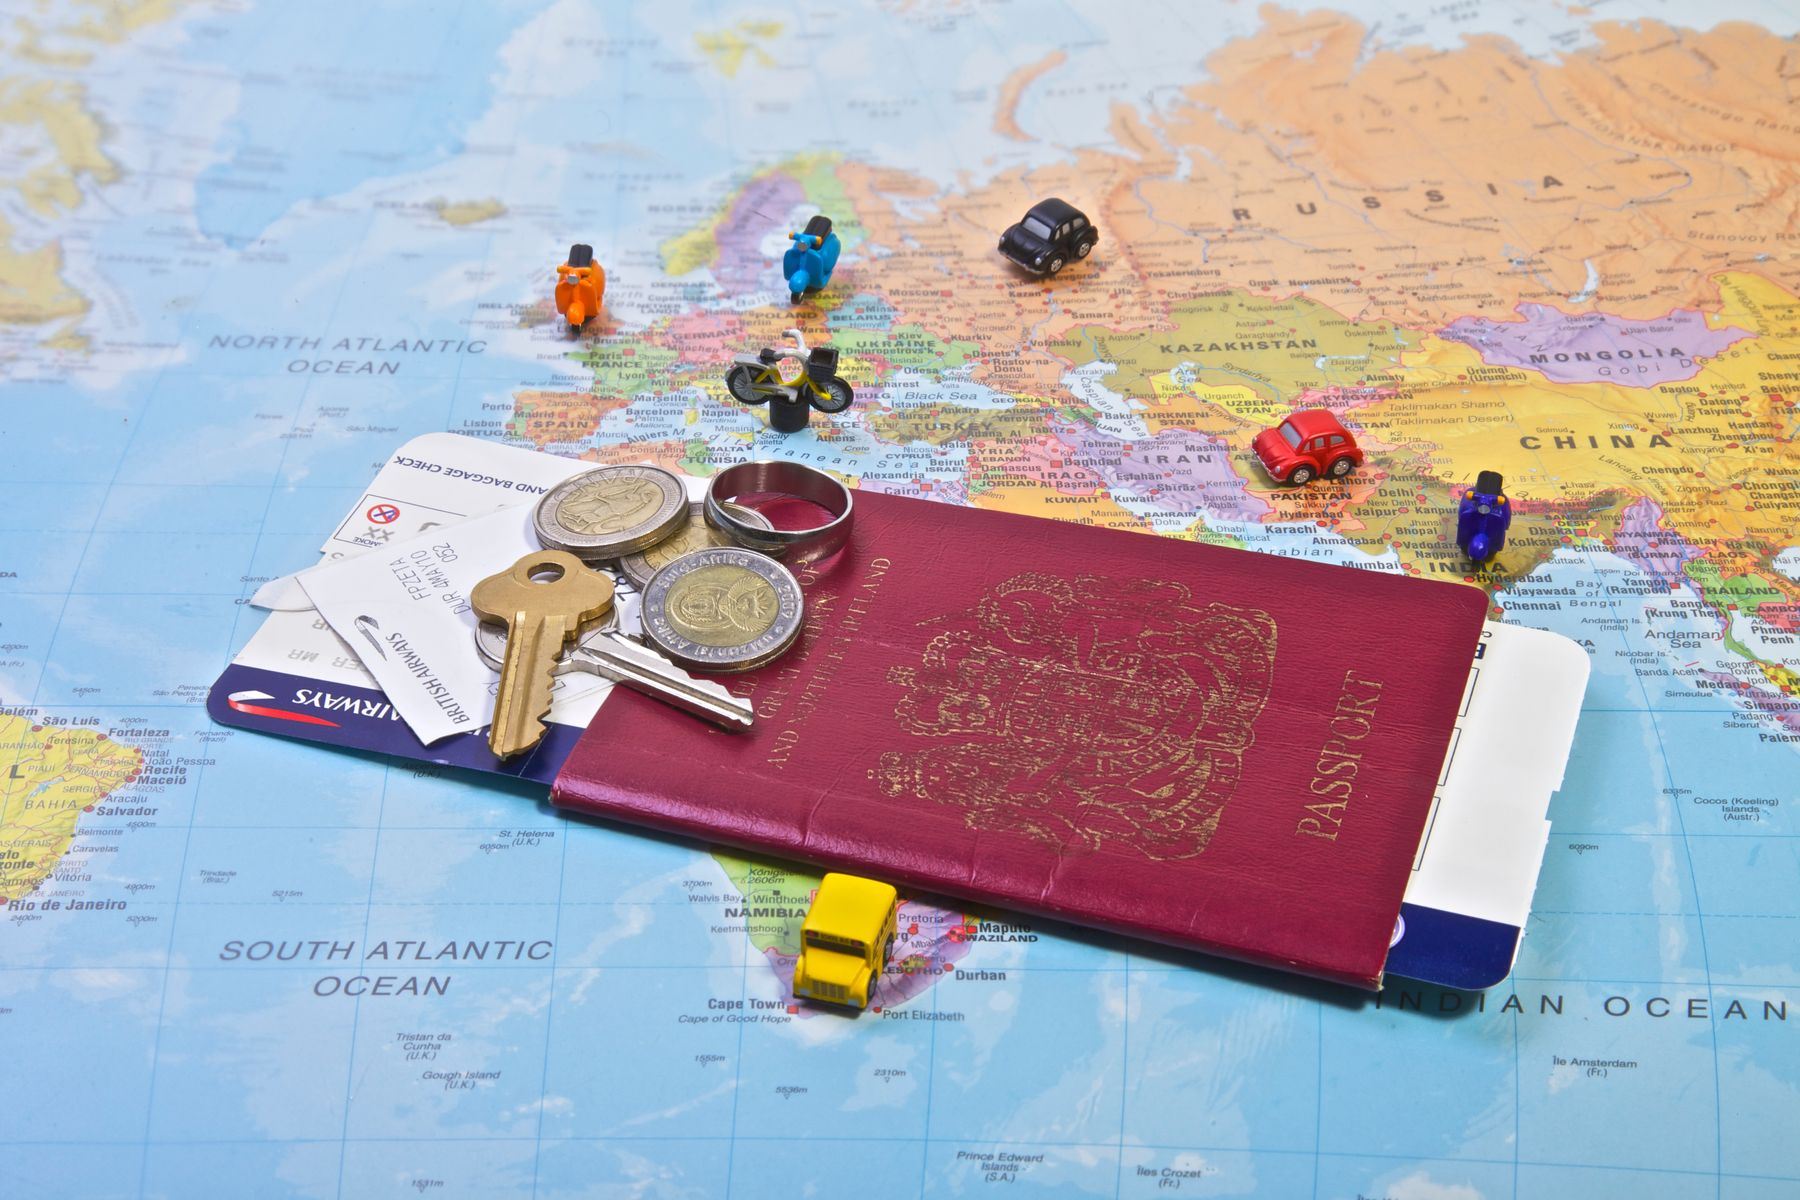 A passport with stamps from all over the world becomes easier to achieve if you book multiple-city flights with Skyscanner